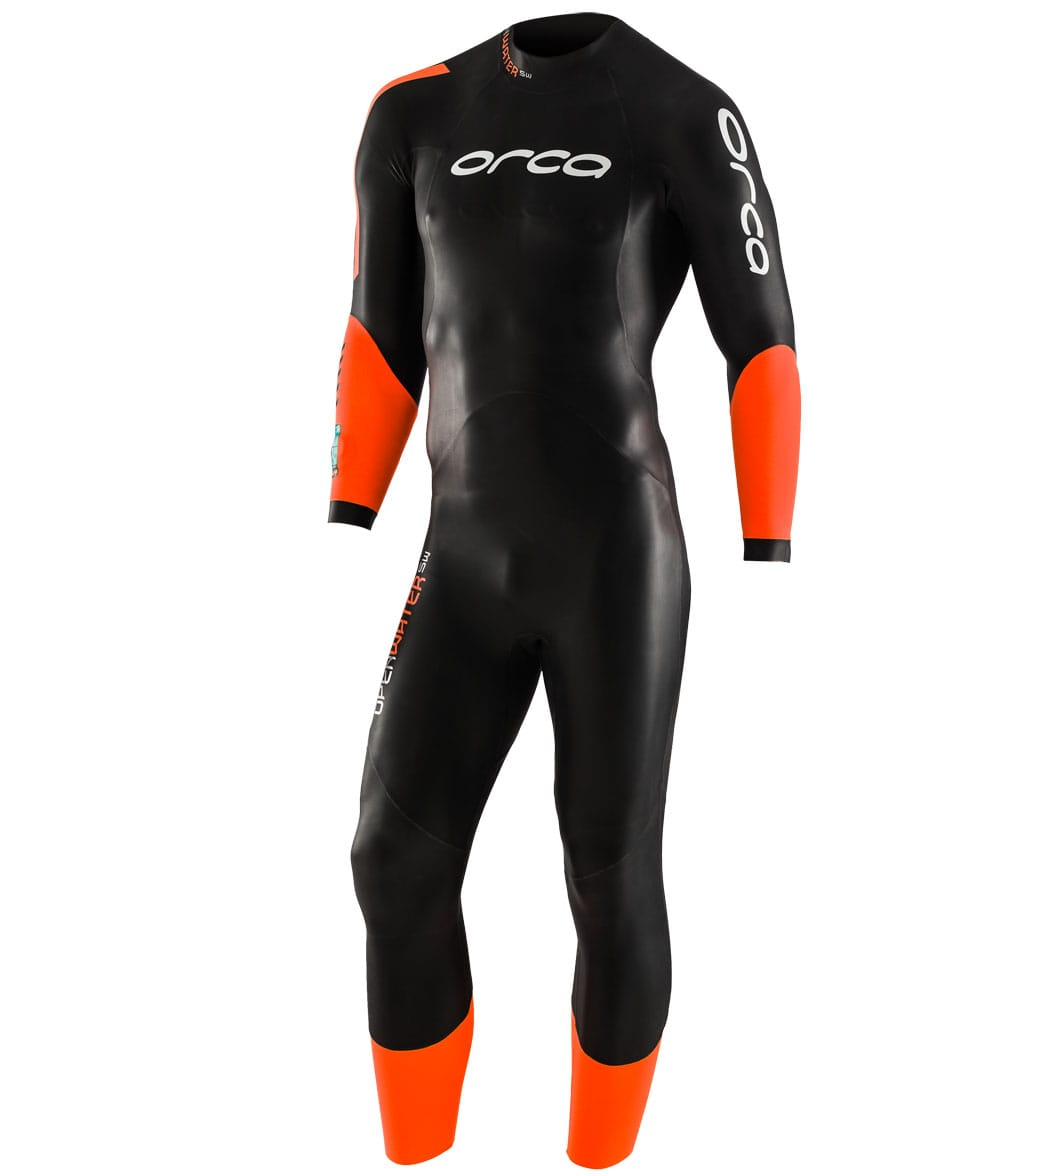 Orca Openwater Smart Wetsuit